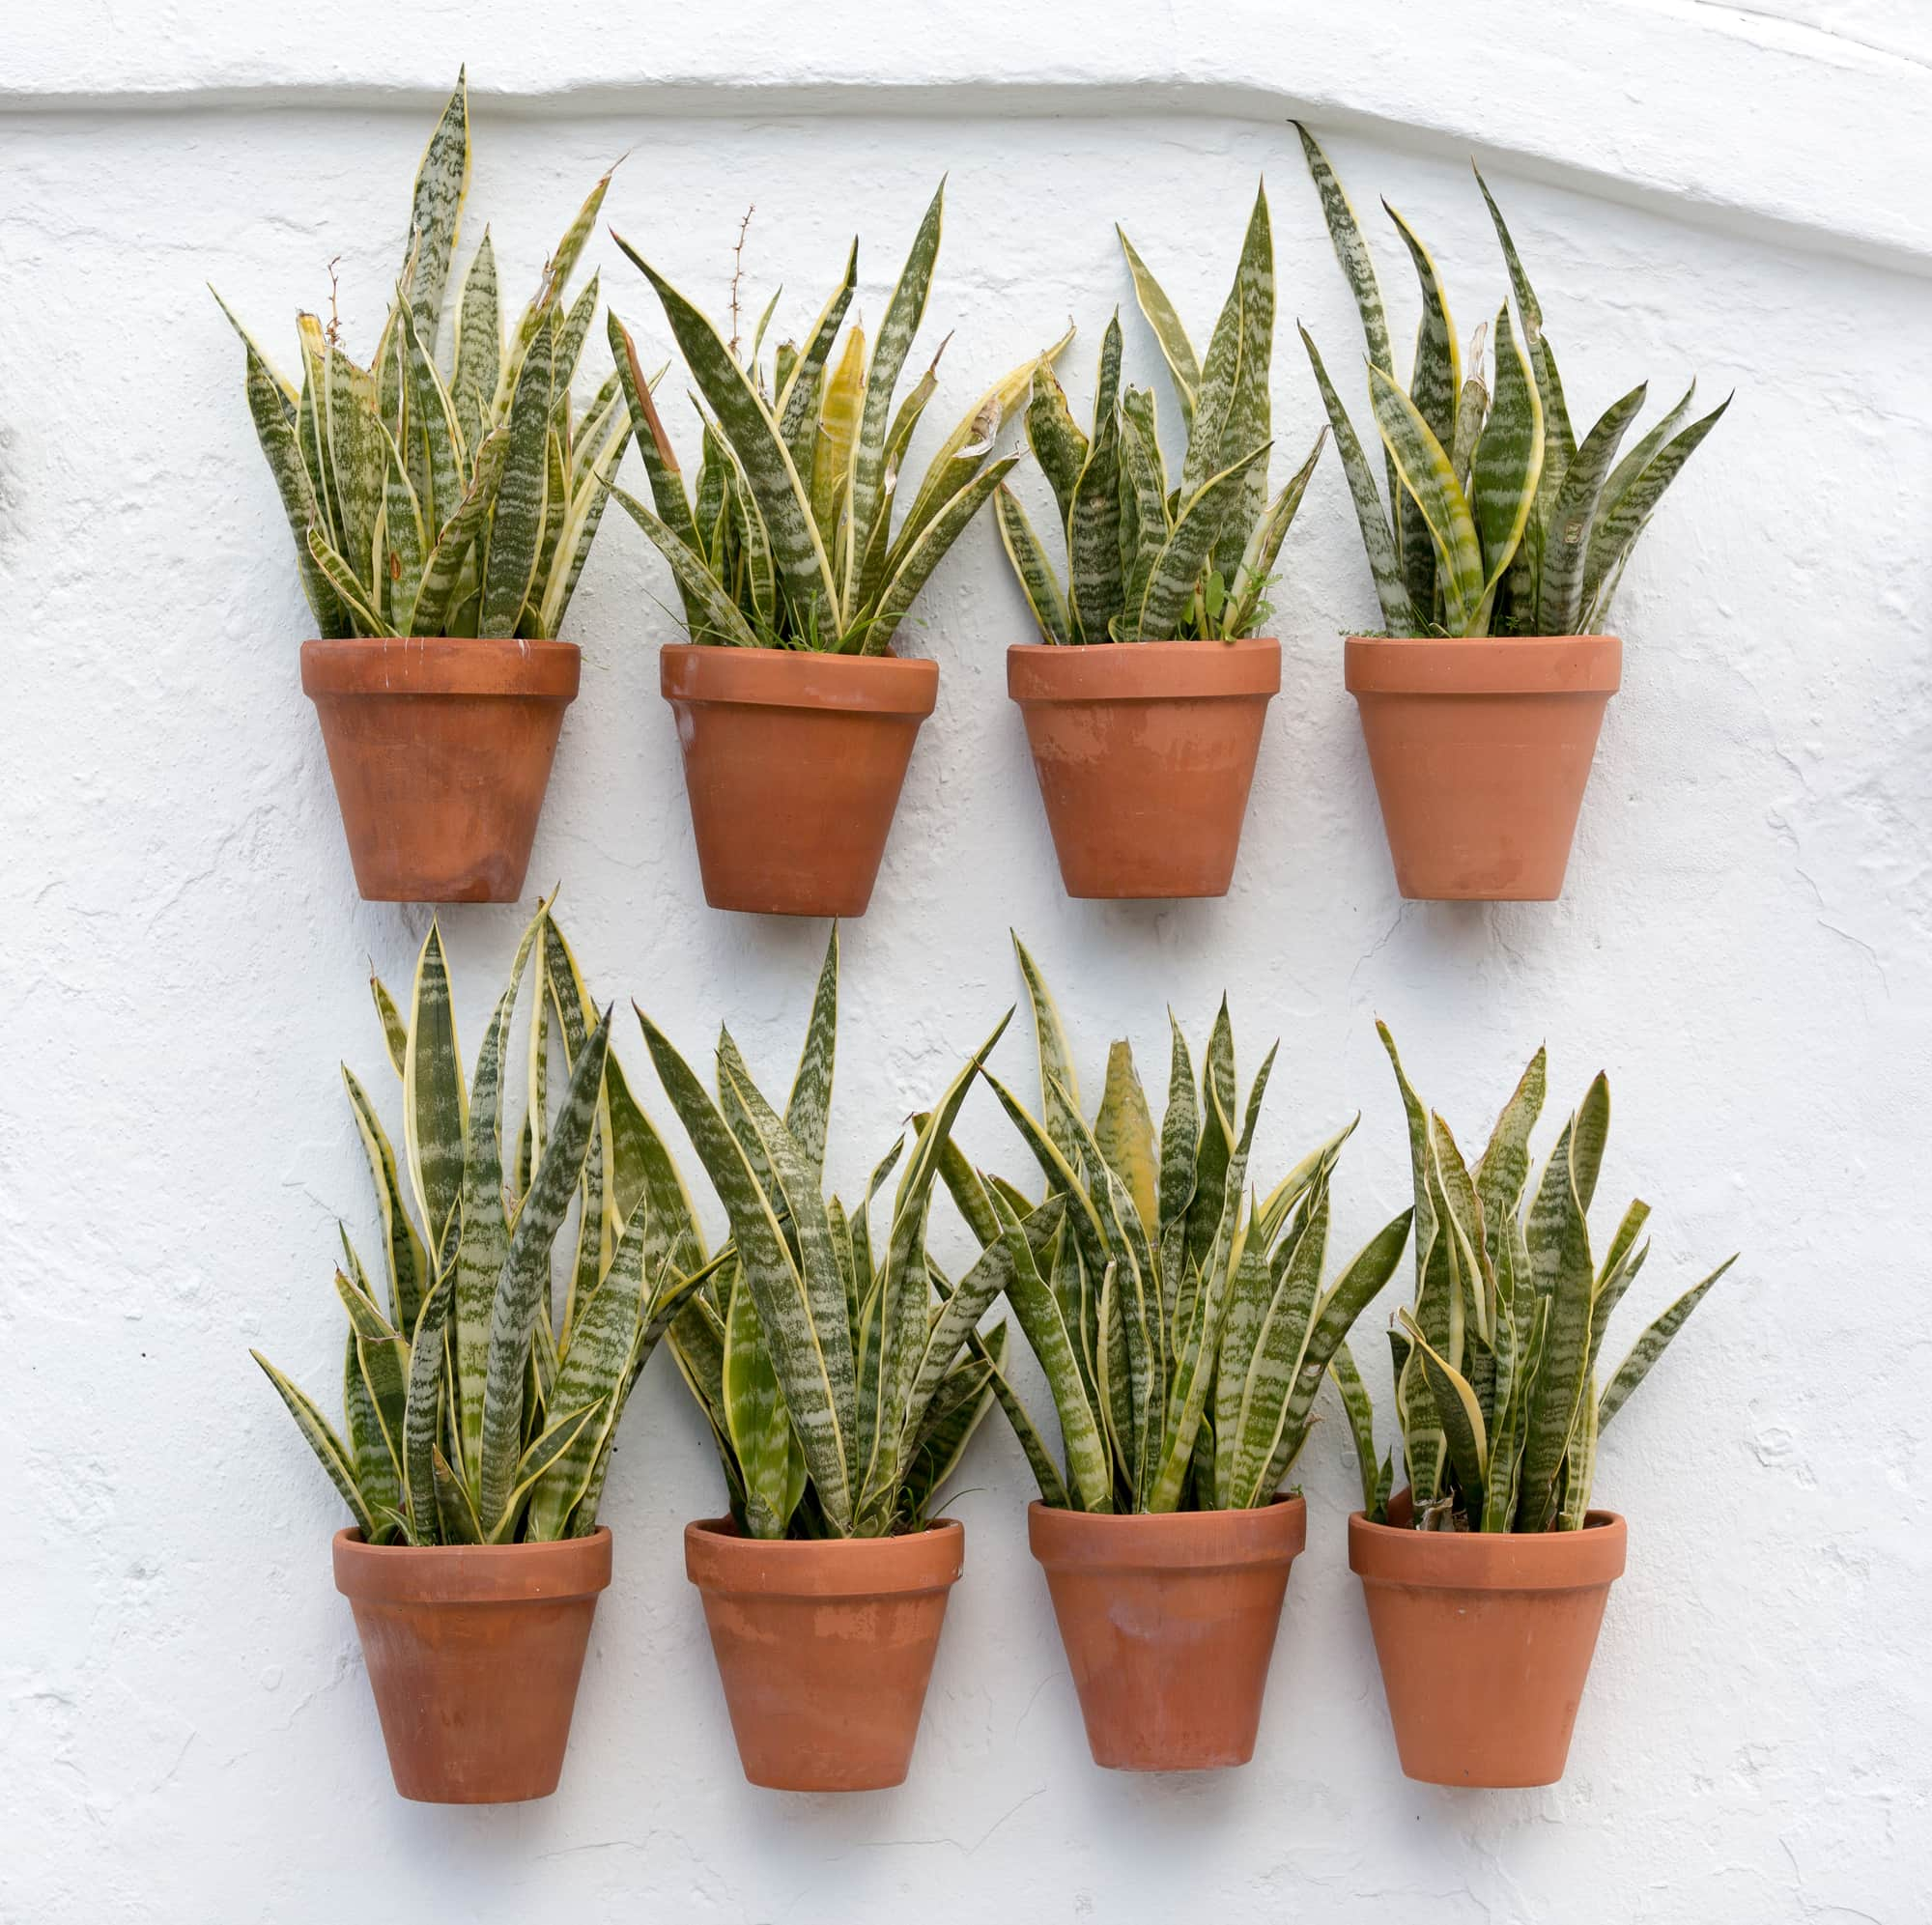 two rows of potted snake plants in terracotta pots